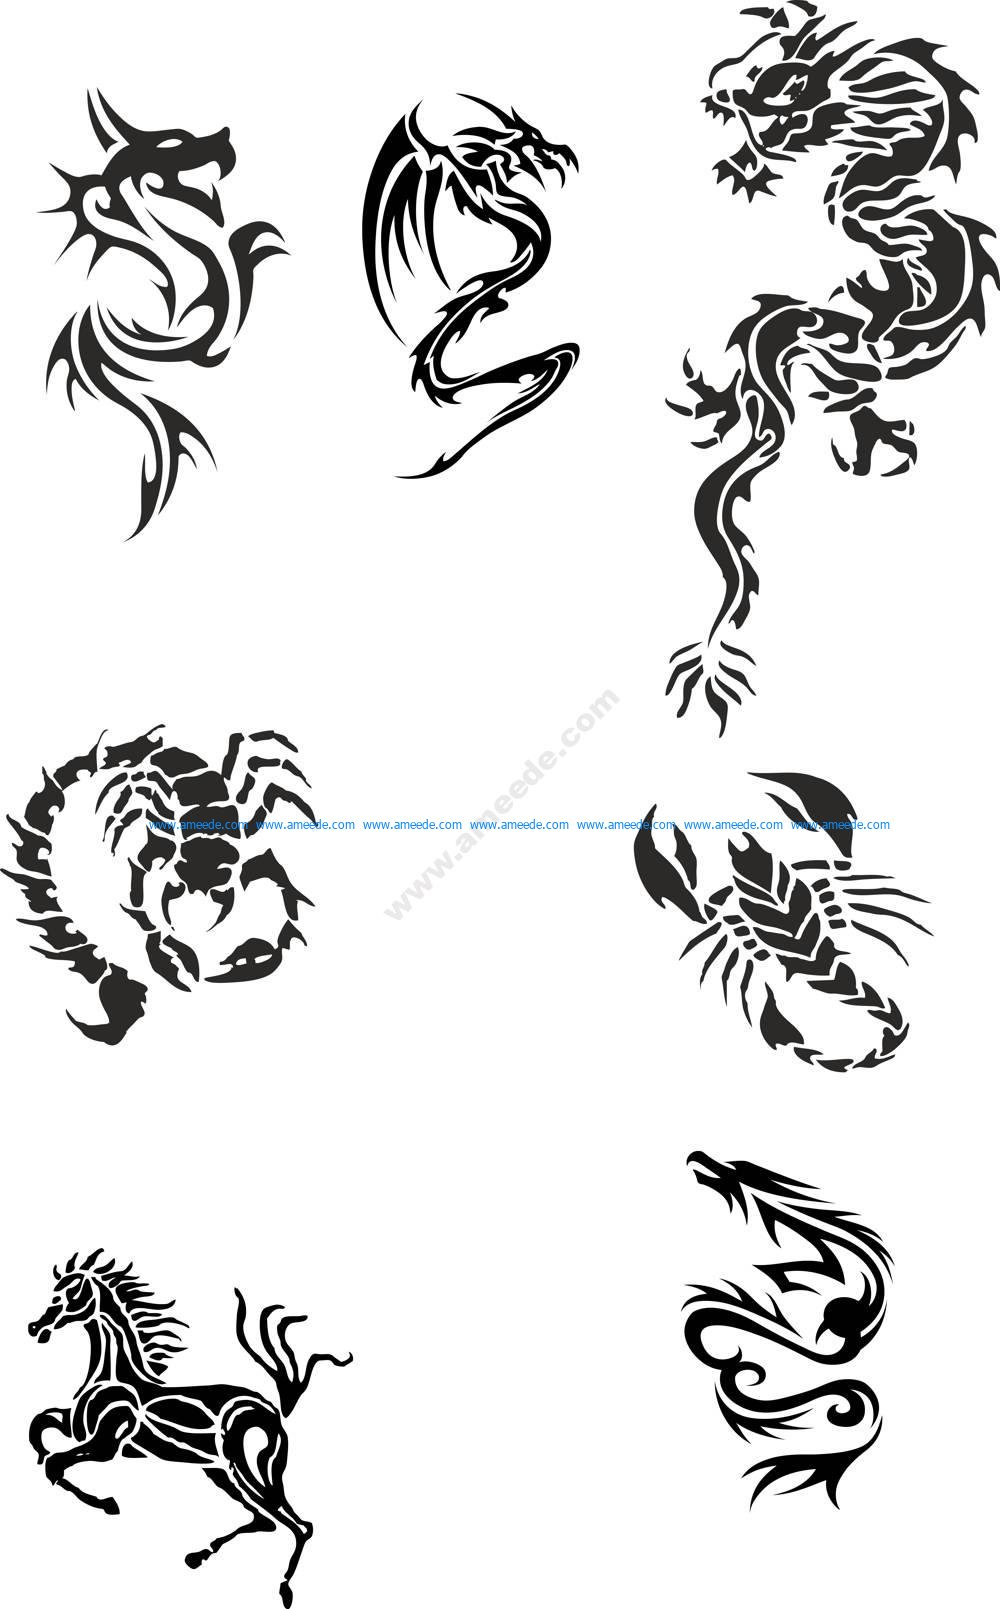 ac655adc07962 Tribal Dragon Tattoo Designs Vector Pack – Amee House